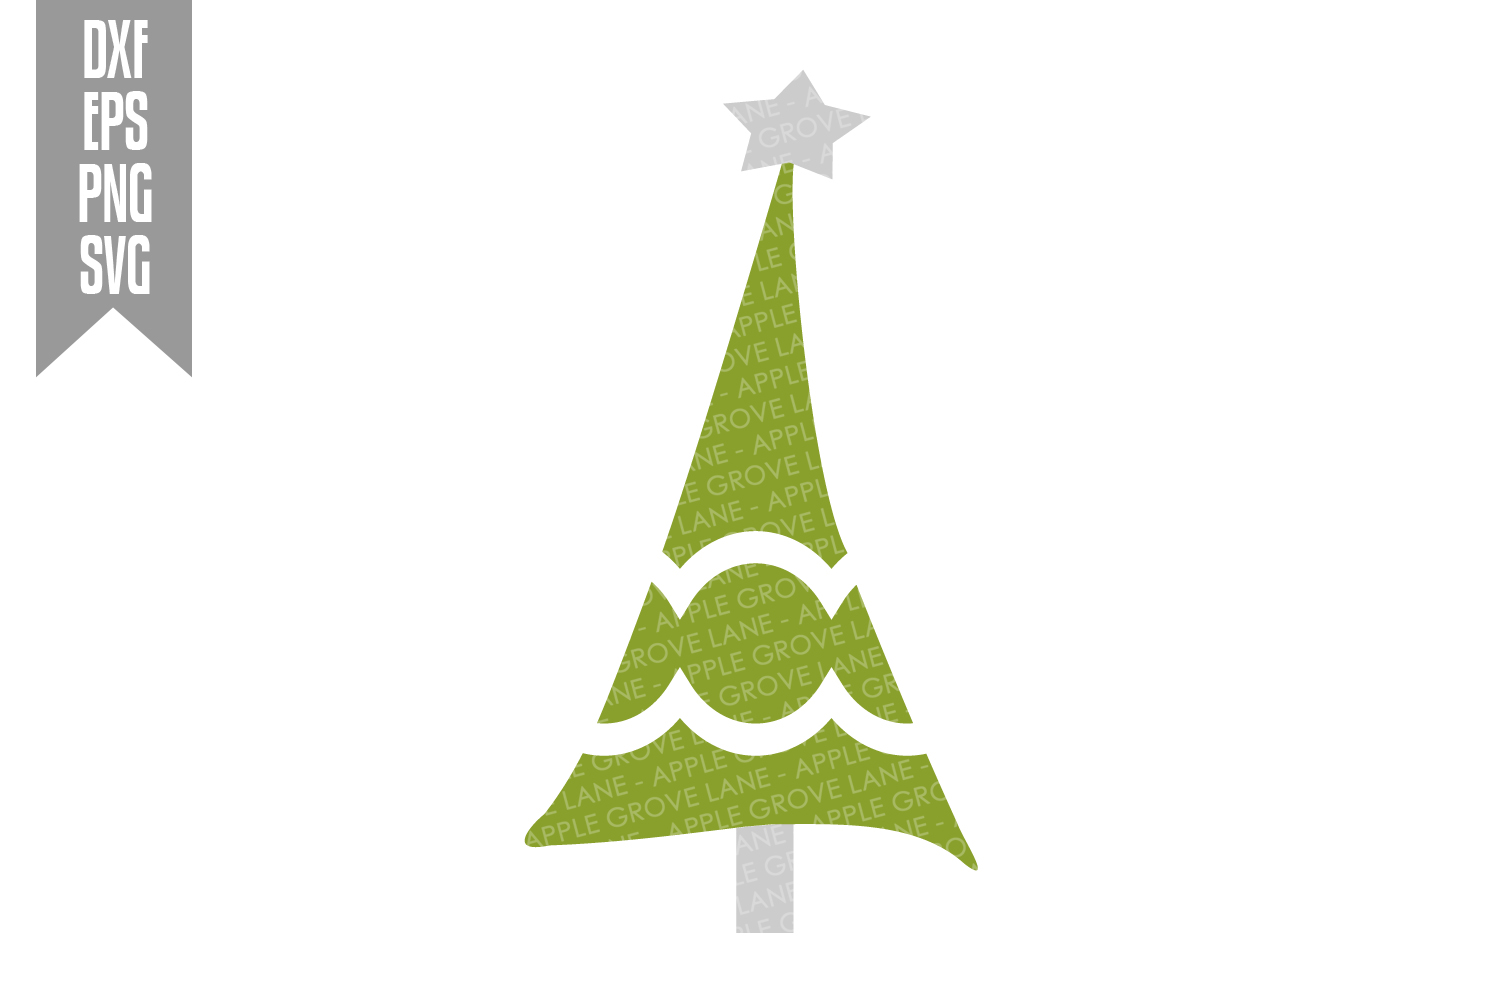 Christmas Tree Svg Bundle - 6 designs included - Svg File example image 5